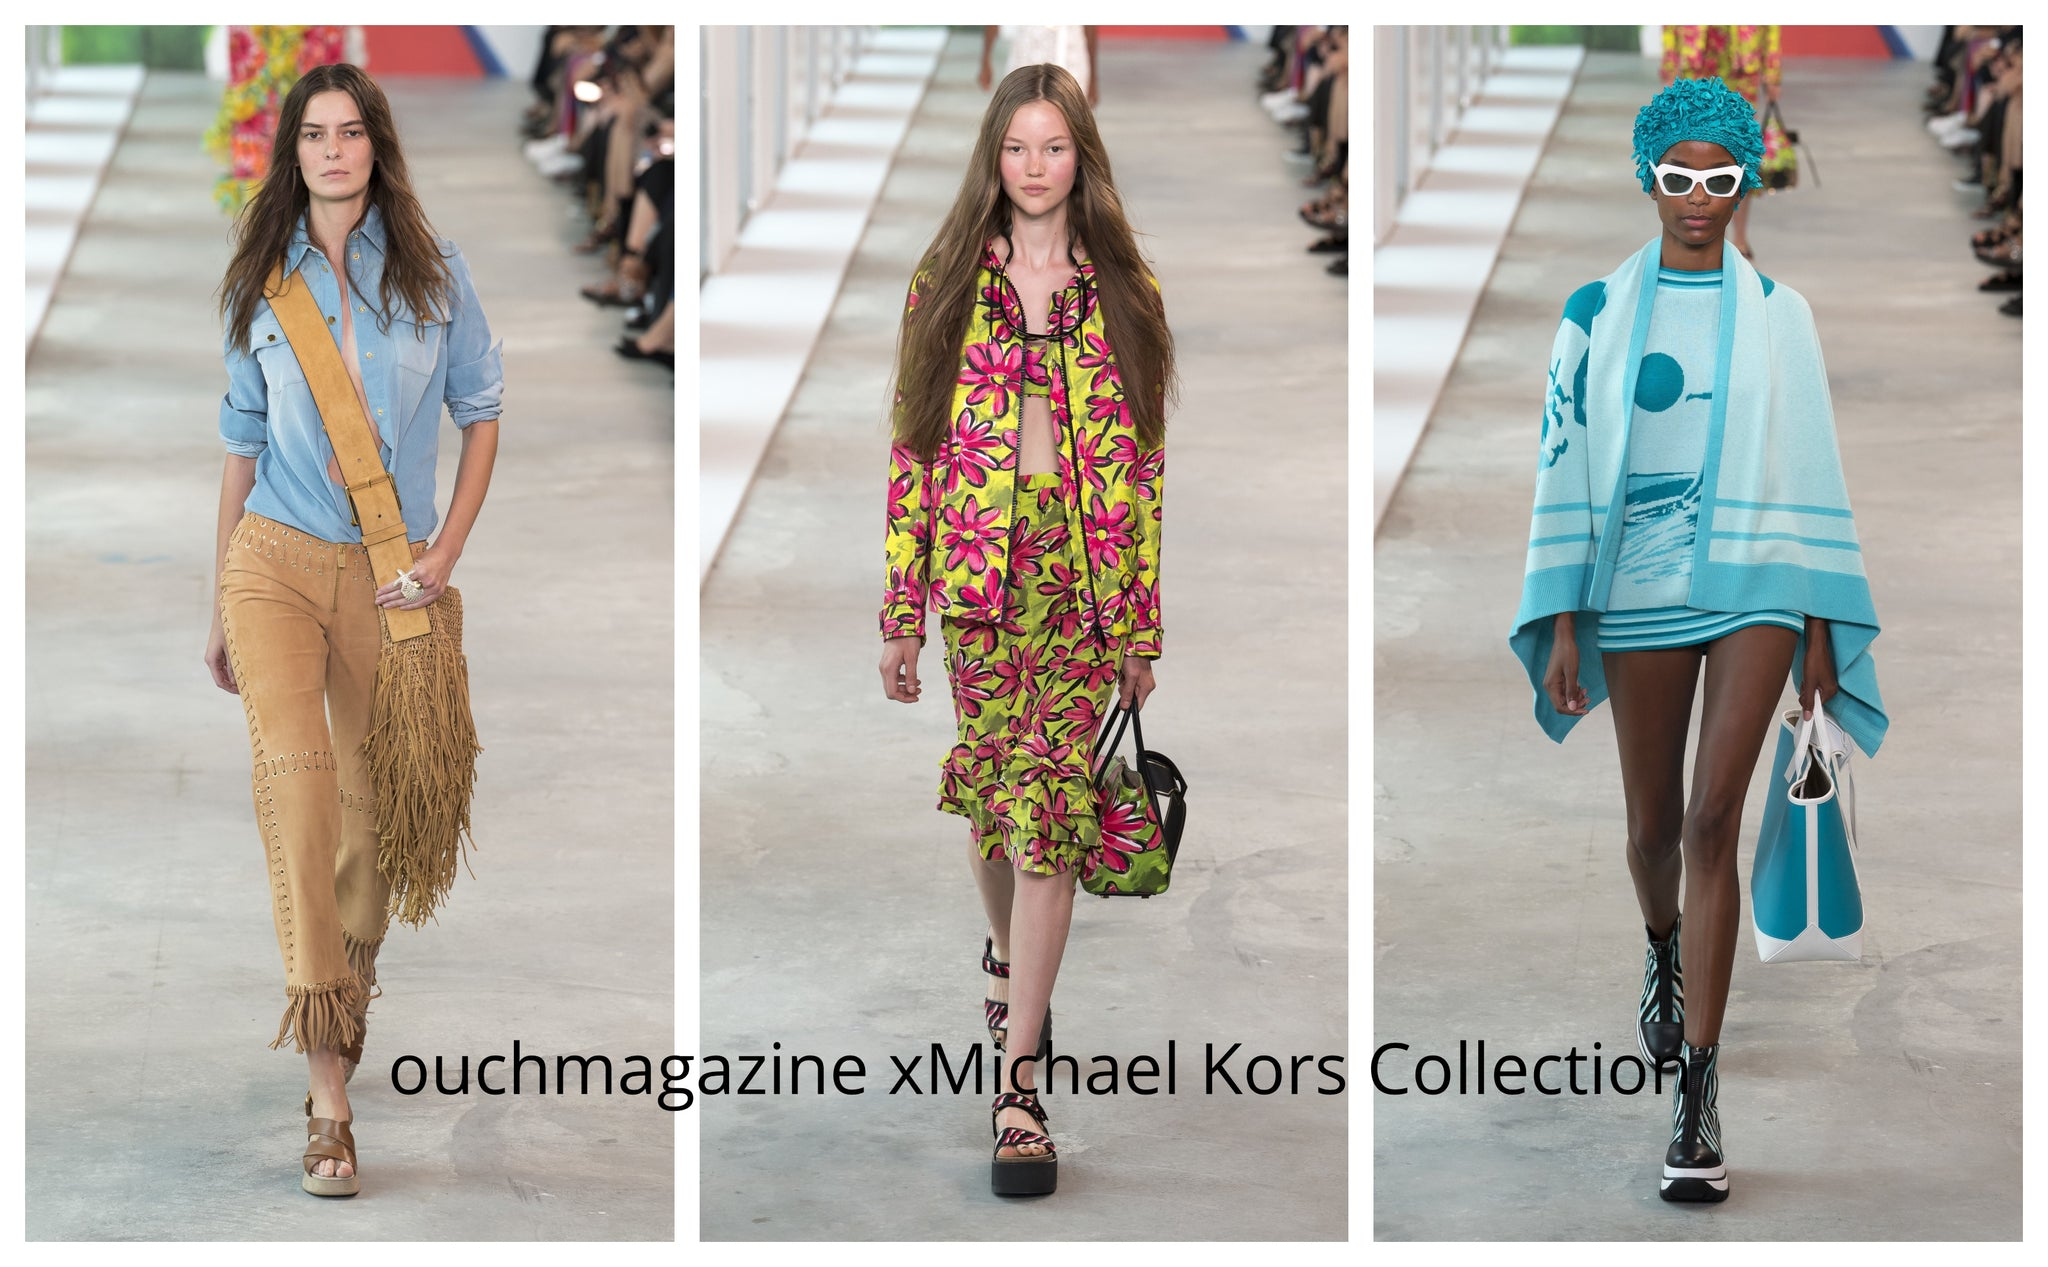 Michael Kors Collection